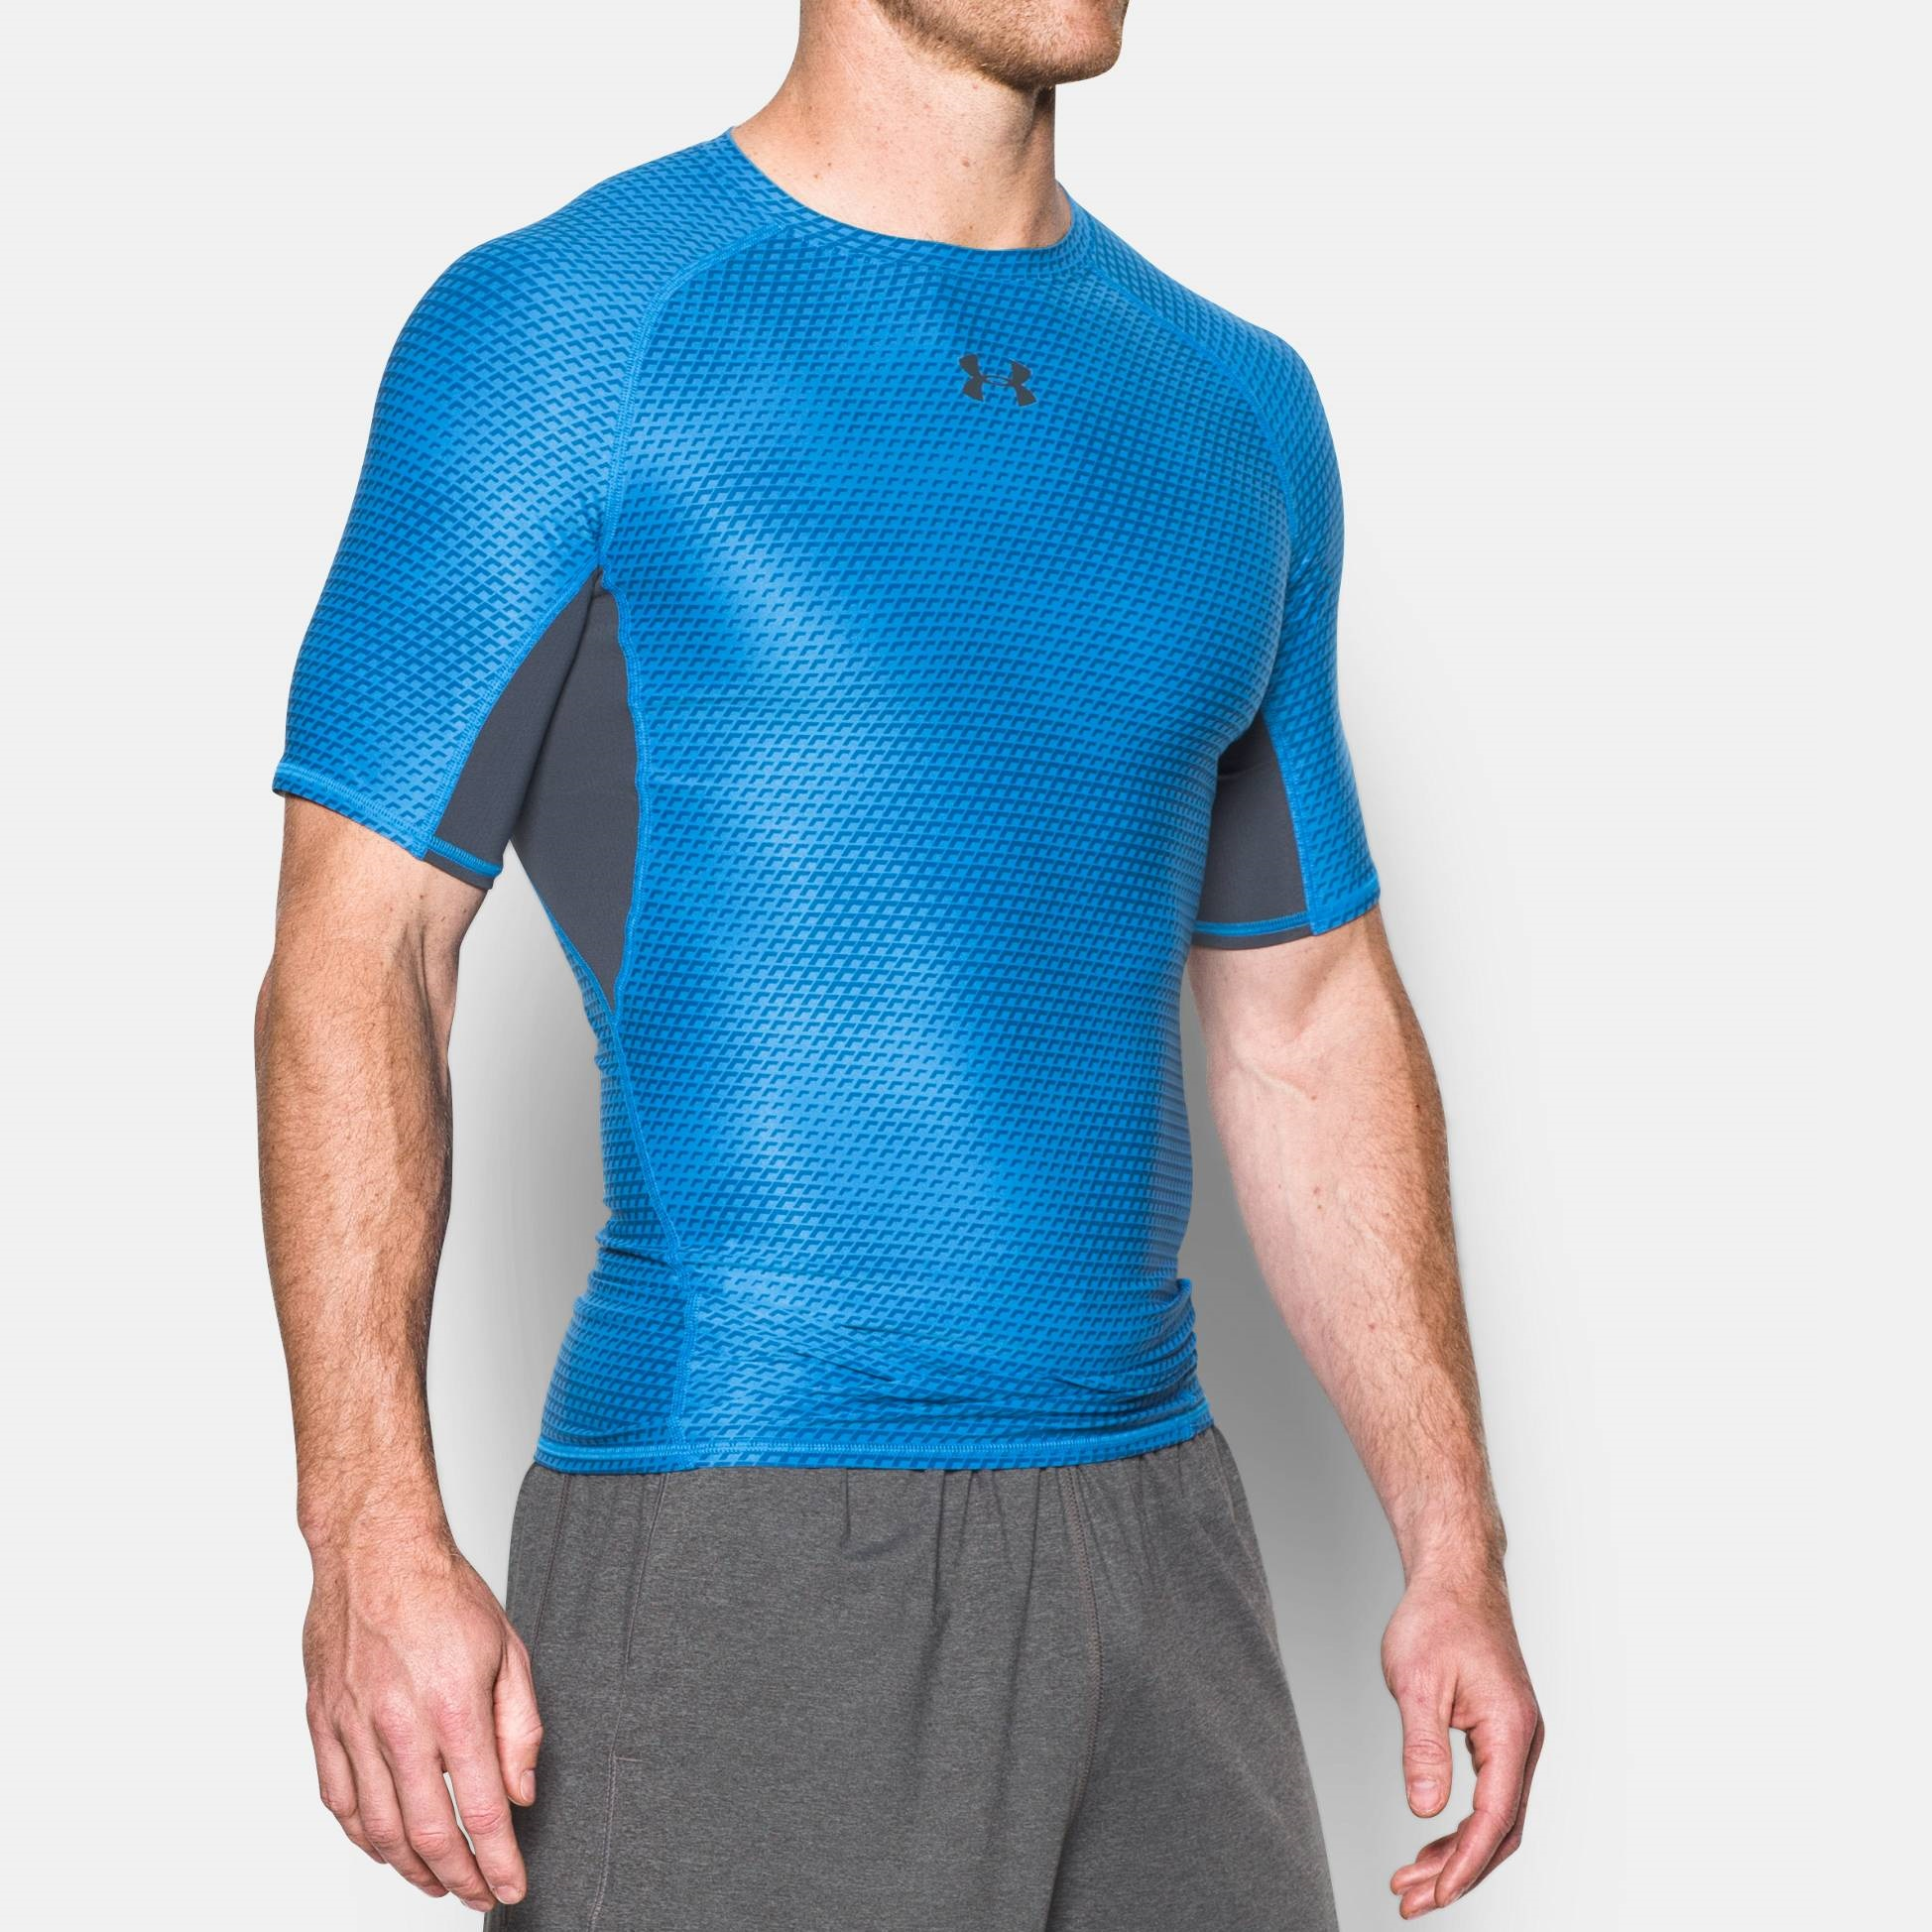 45275b51 Under Armour Mens Heatgear Armour Printed Short Sleeve Compression Shirt